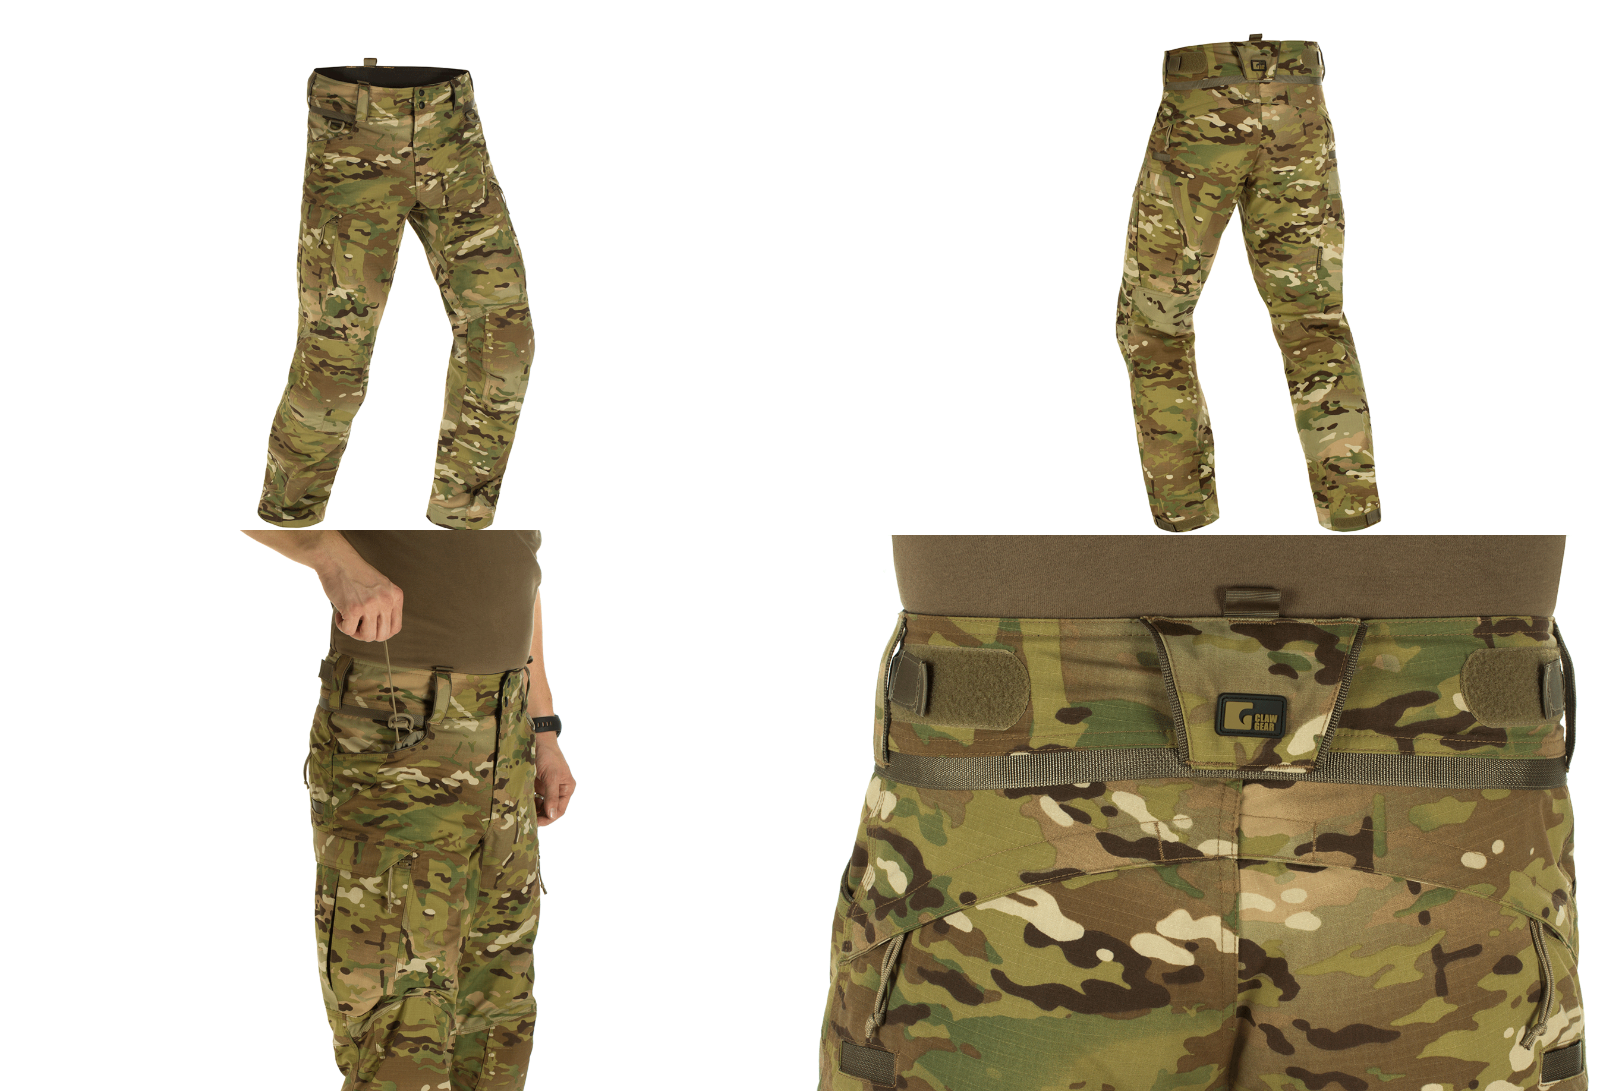 Claw Gear Operator Pantaloni Combat Pant Knee Pads Multicam Mc Nyco Size 60 R -  - ebay.it